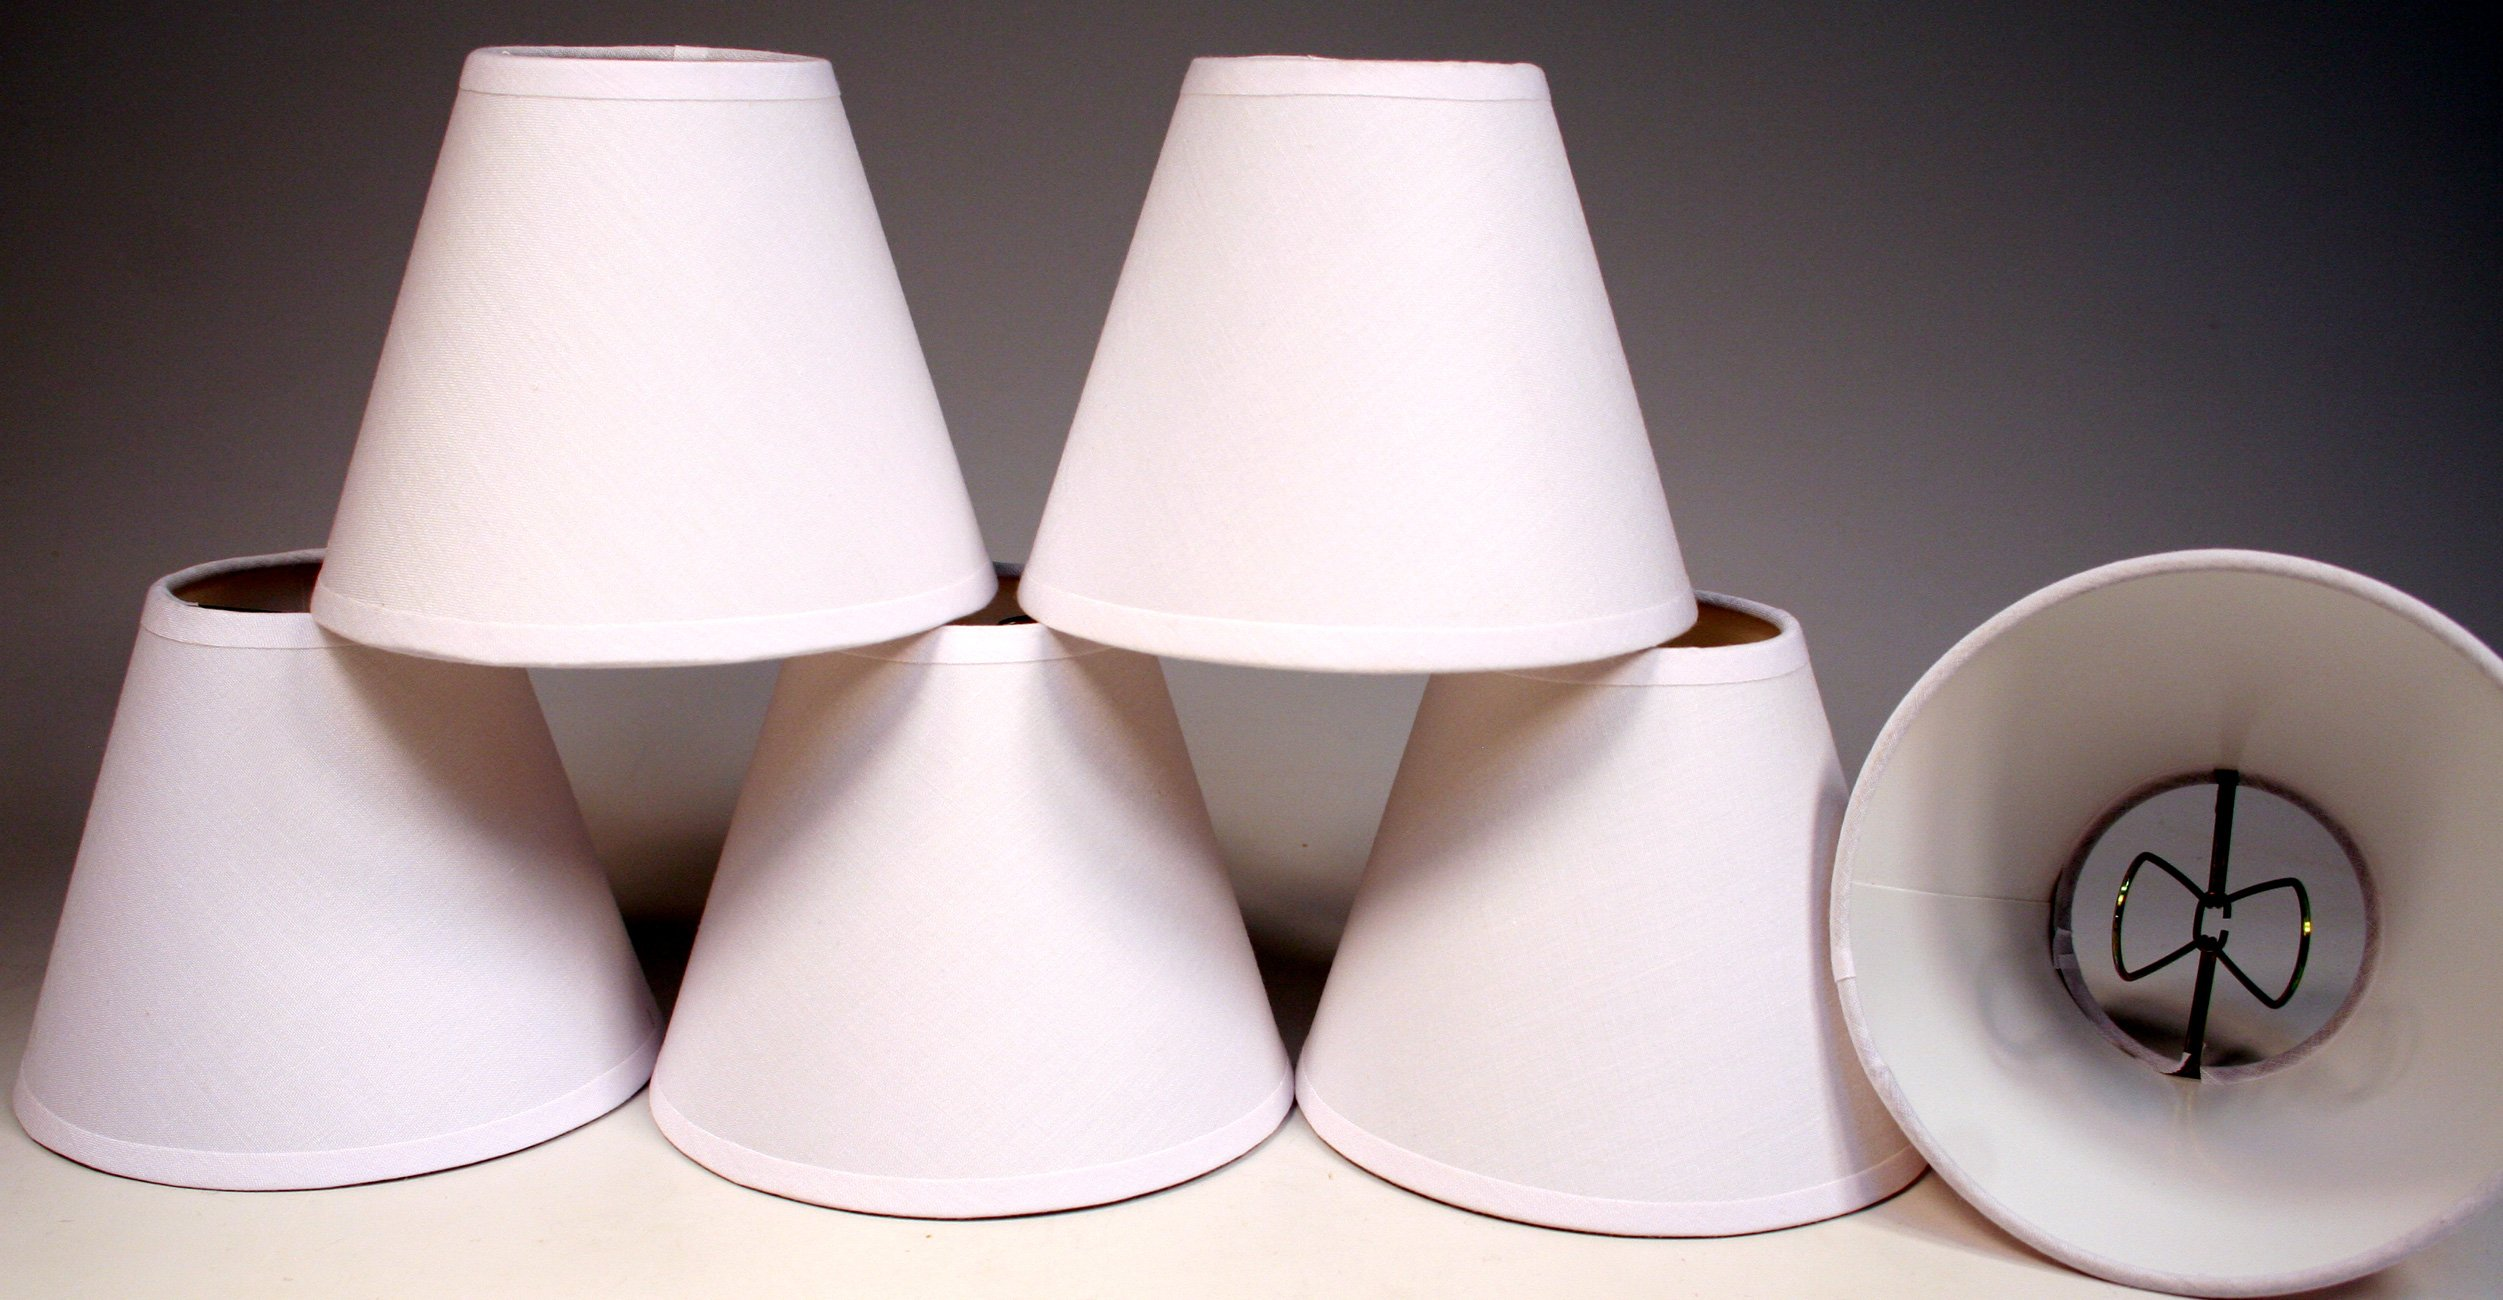 Creative Hobbies Small 4 Inch, Cream Color Linen Fabric Lamp Shades for Chandeliers, Sconces, Window Candles, Clip onto Small Teardrop Shaped Candelabra Bulbs, (Pack of 6 Shades)